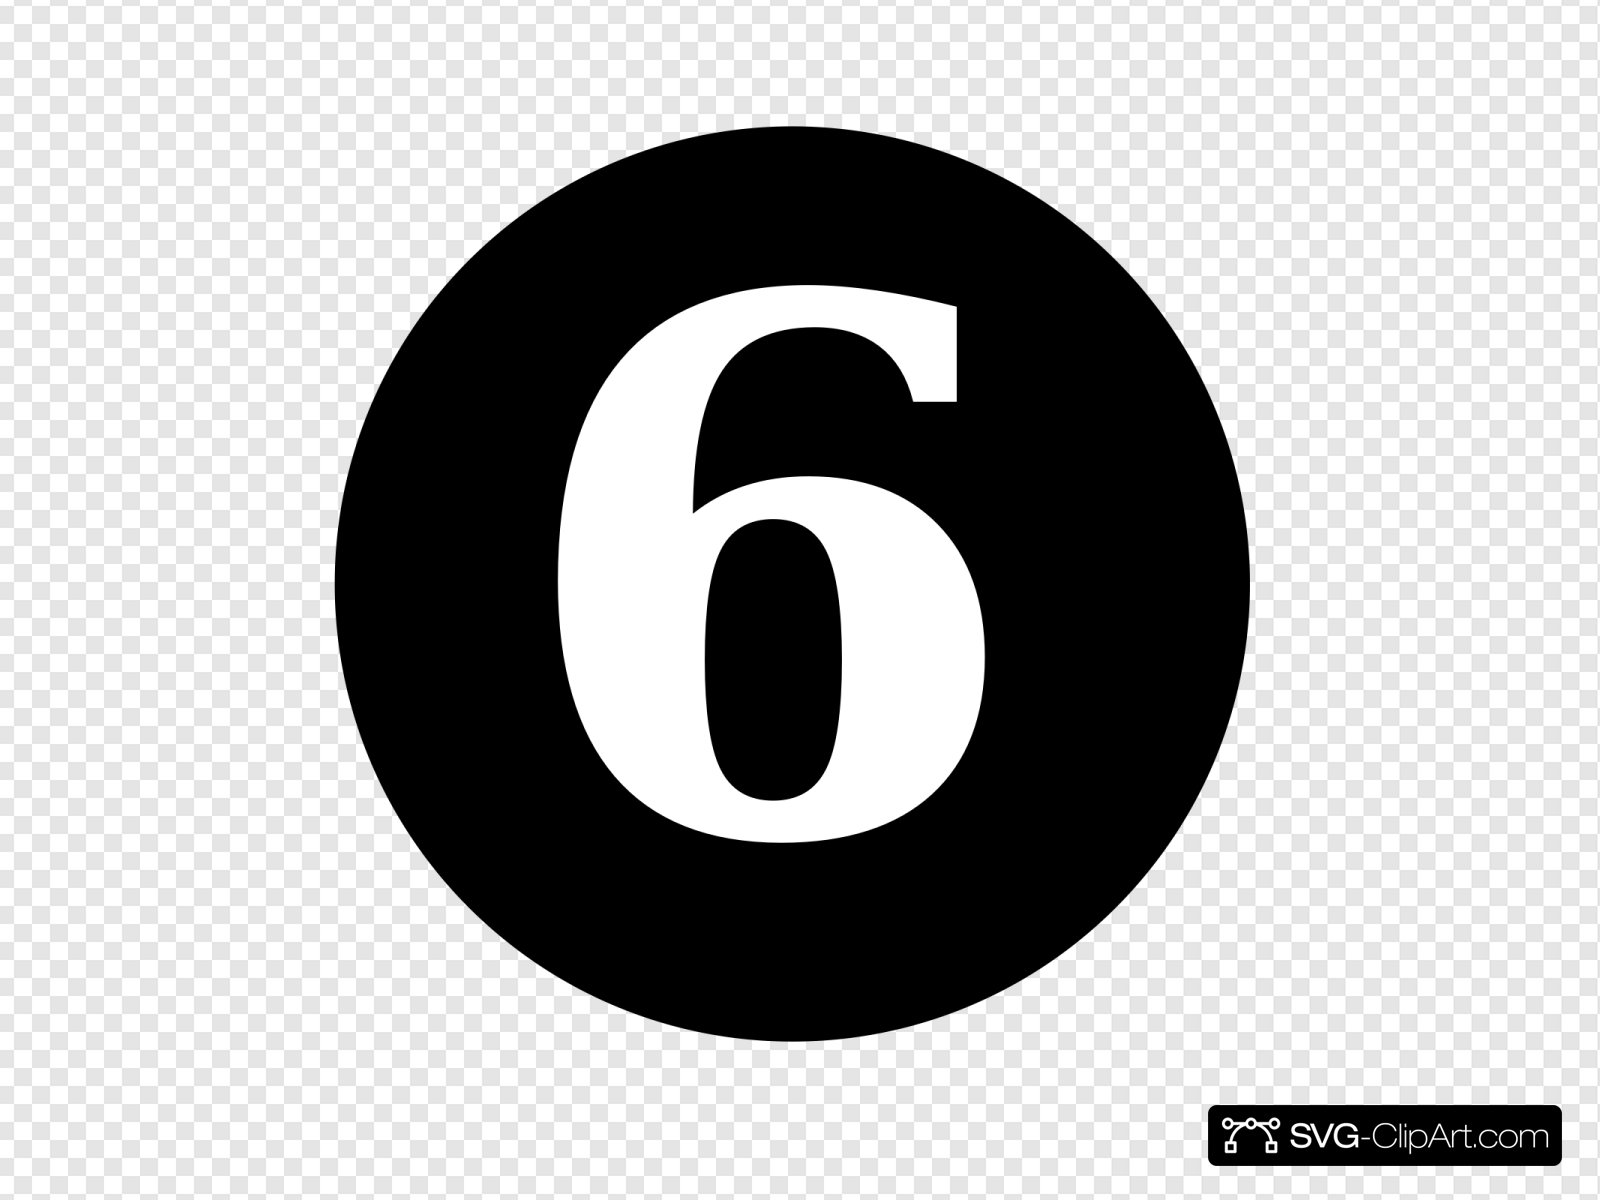 jpg royalty free stock White numeral centered inside. 6 clipart circle